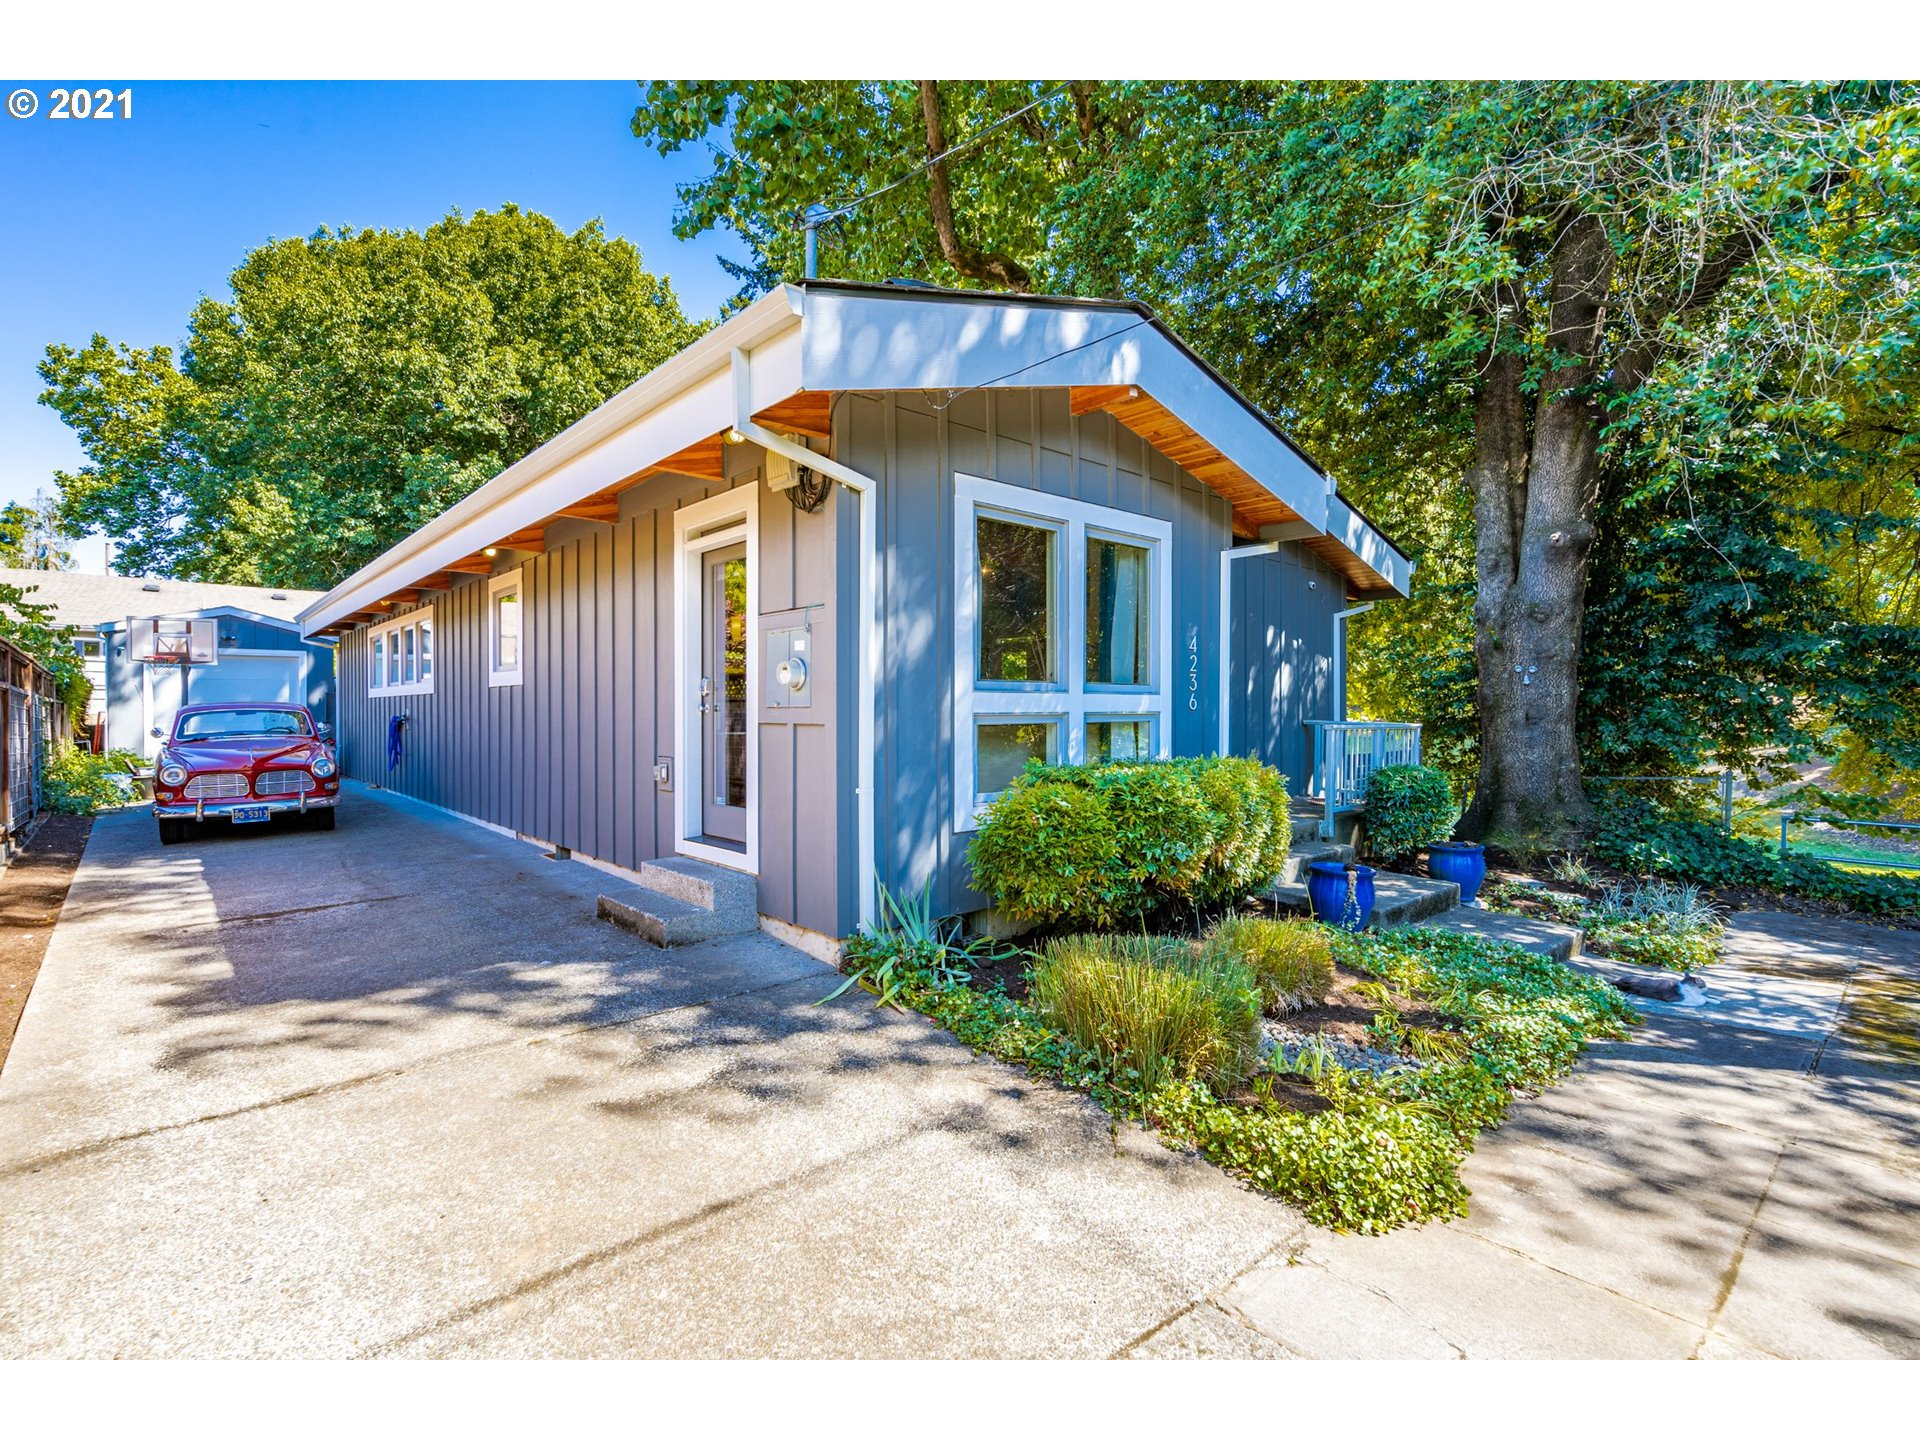 Rare 5+3 mid-mod home on corner lot at end of cul-de-sac offers vaulted ceilings & floor-to-ceiling windows for sweeping verdant views of park! Custom kitchen takes center stage w/ long Caesarstone island, sleek cabinetry & fleet of built-in appl. Primary en-suite w/ jetted tub & access to wrap-around deck & yard. LL family rm, 5th bed & laundry. Exceptional attention to detail & artful finishes make this one of PDX's most impressive homes.Incredible close-in location mere moments to everything!